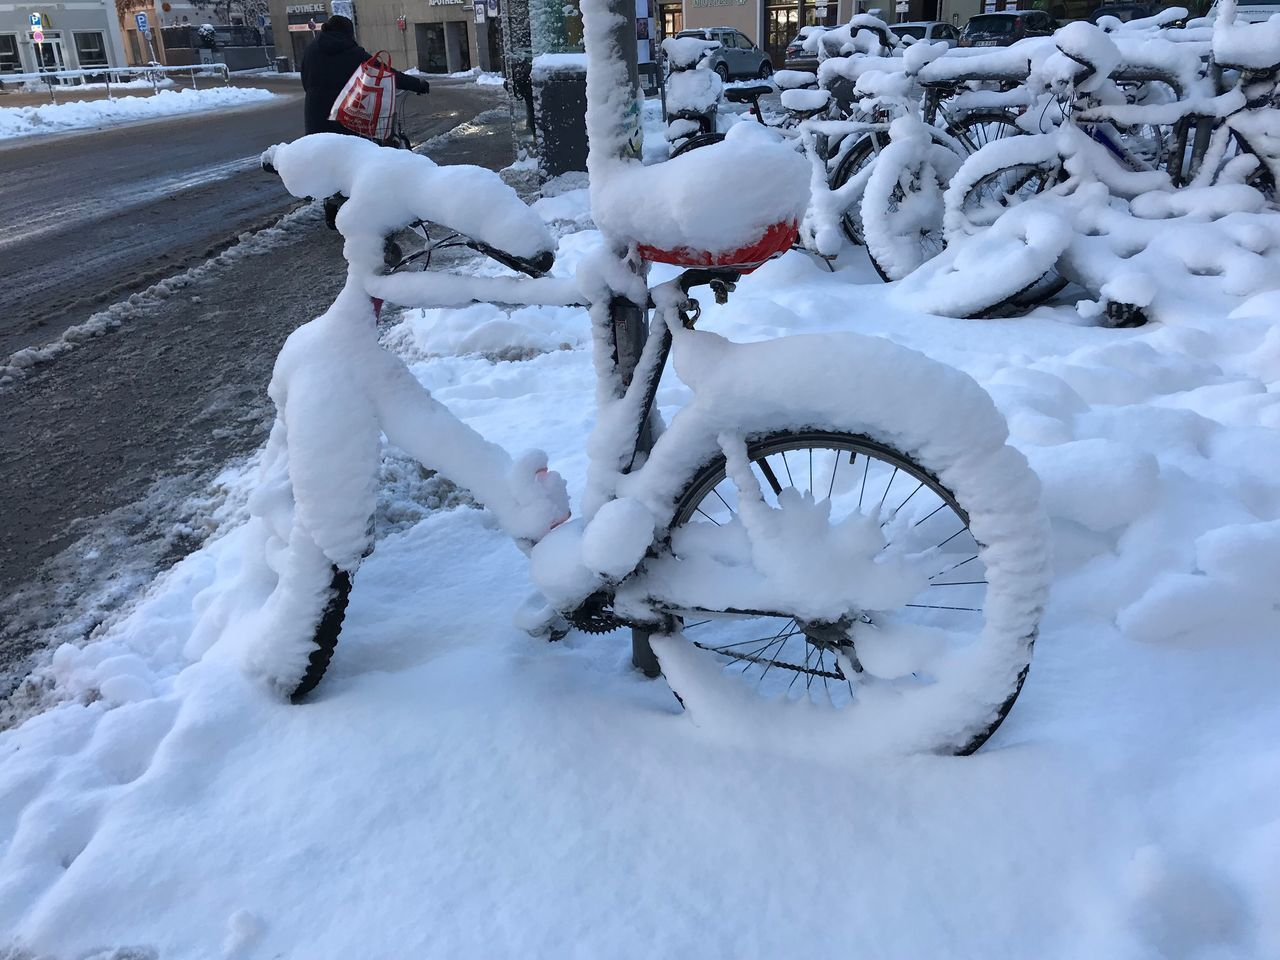 snow, winter, cold temperature, covering, transportation, white color, mode of transportation, land vehicle, day, bicycle, nature, frozen, no people, stationary, deep snow, outdoors, field, beauty in nature, land, extreme weather, wheel, snowing